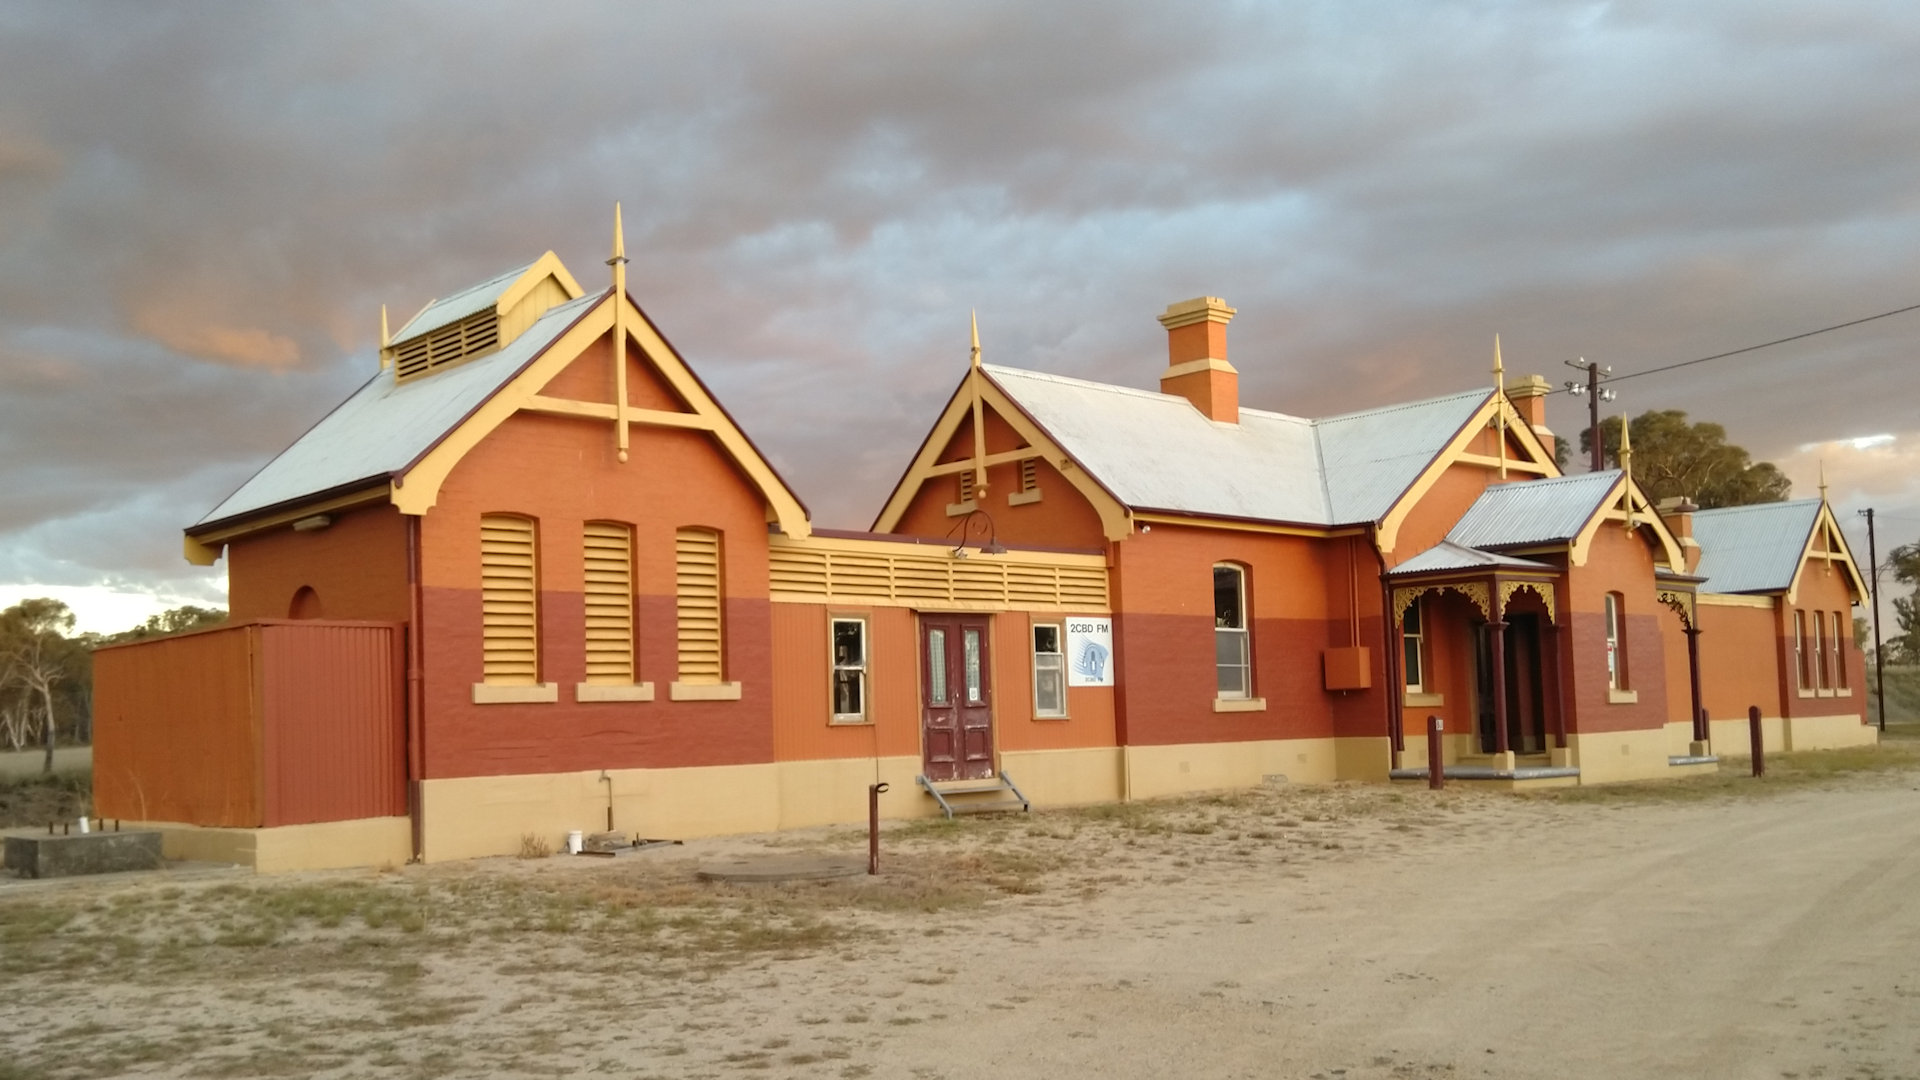 Historical railway station building at Deepwater in NSW